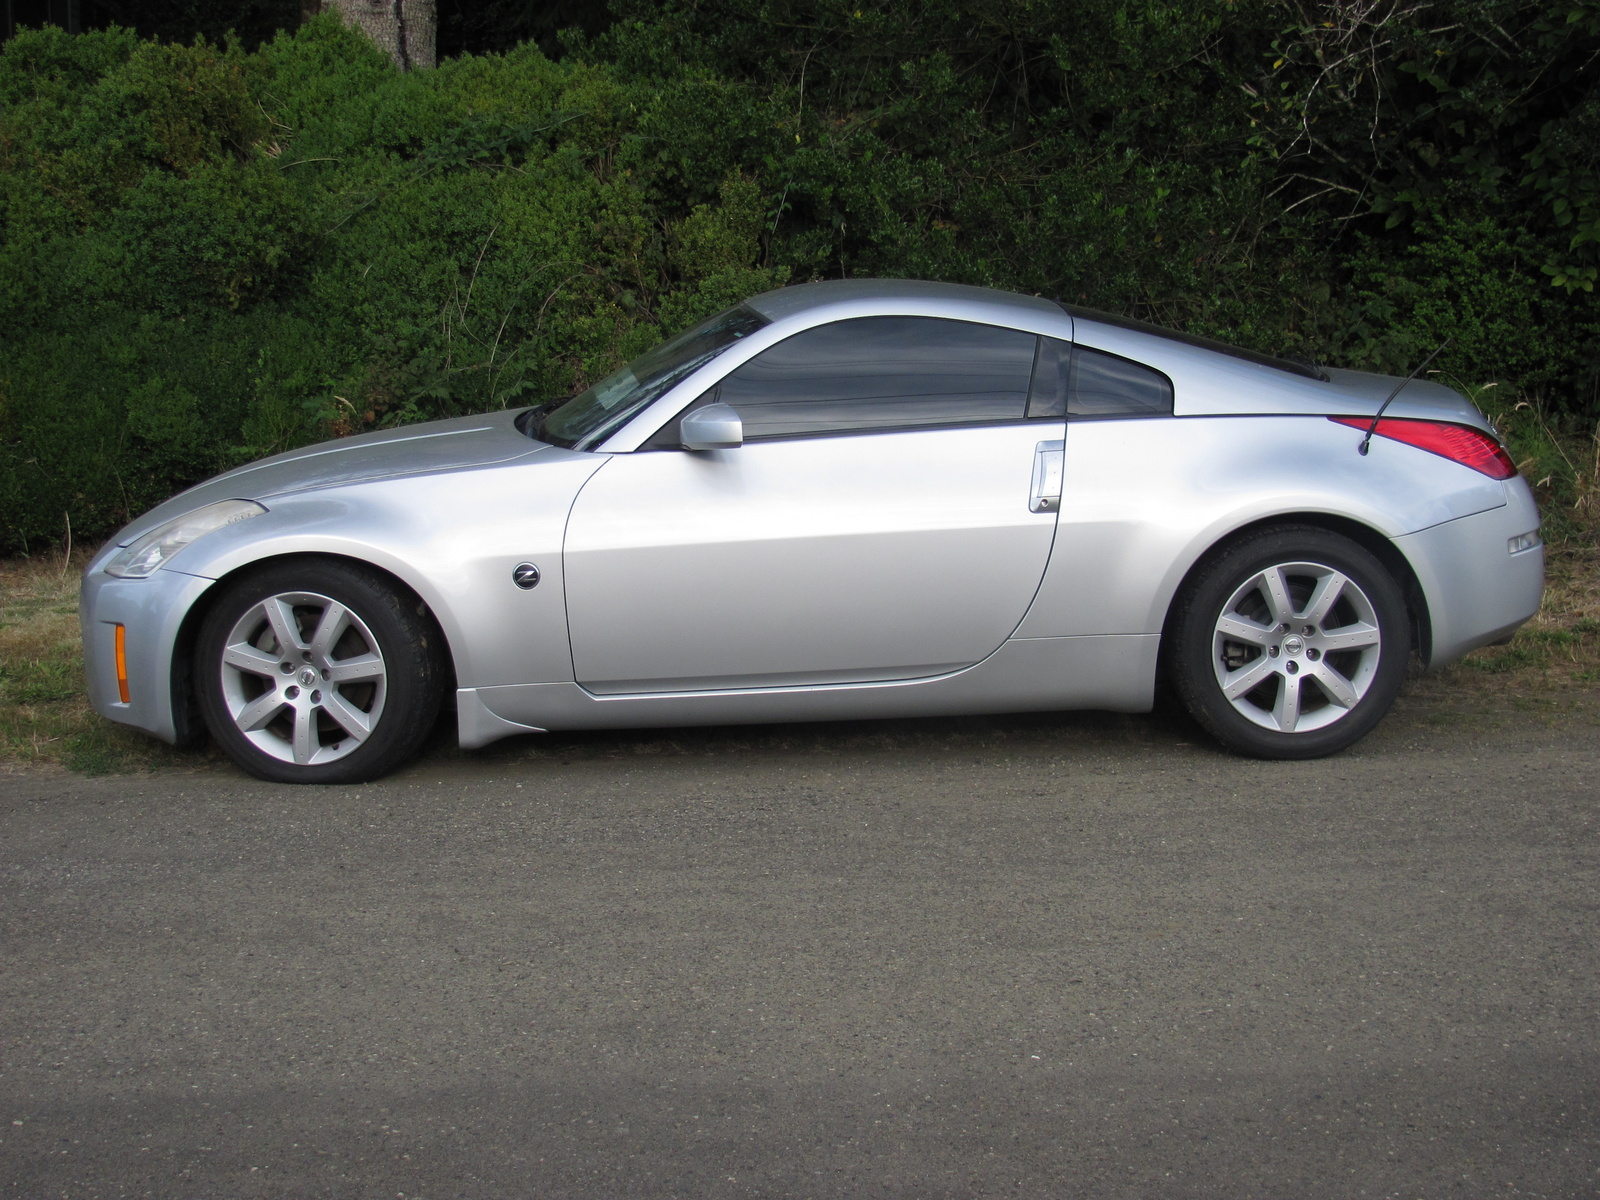 2006 Nissan 350Z - Pictures - CarGurus